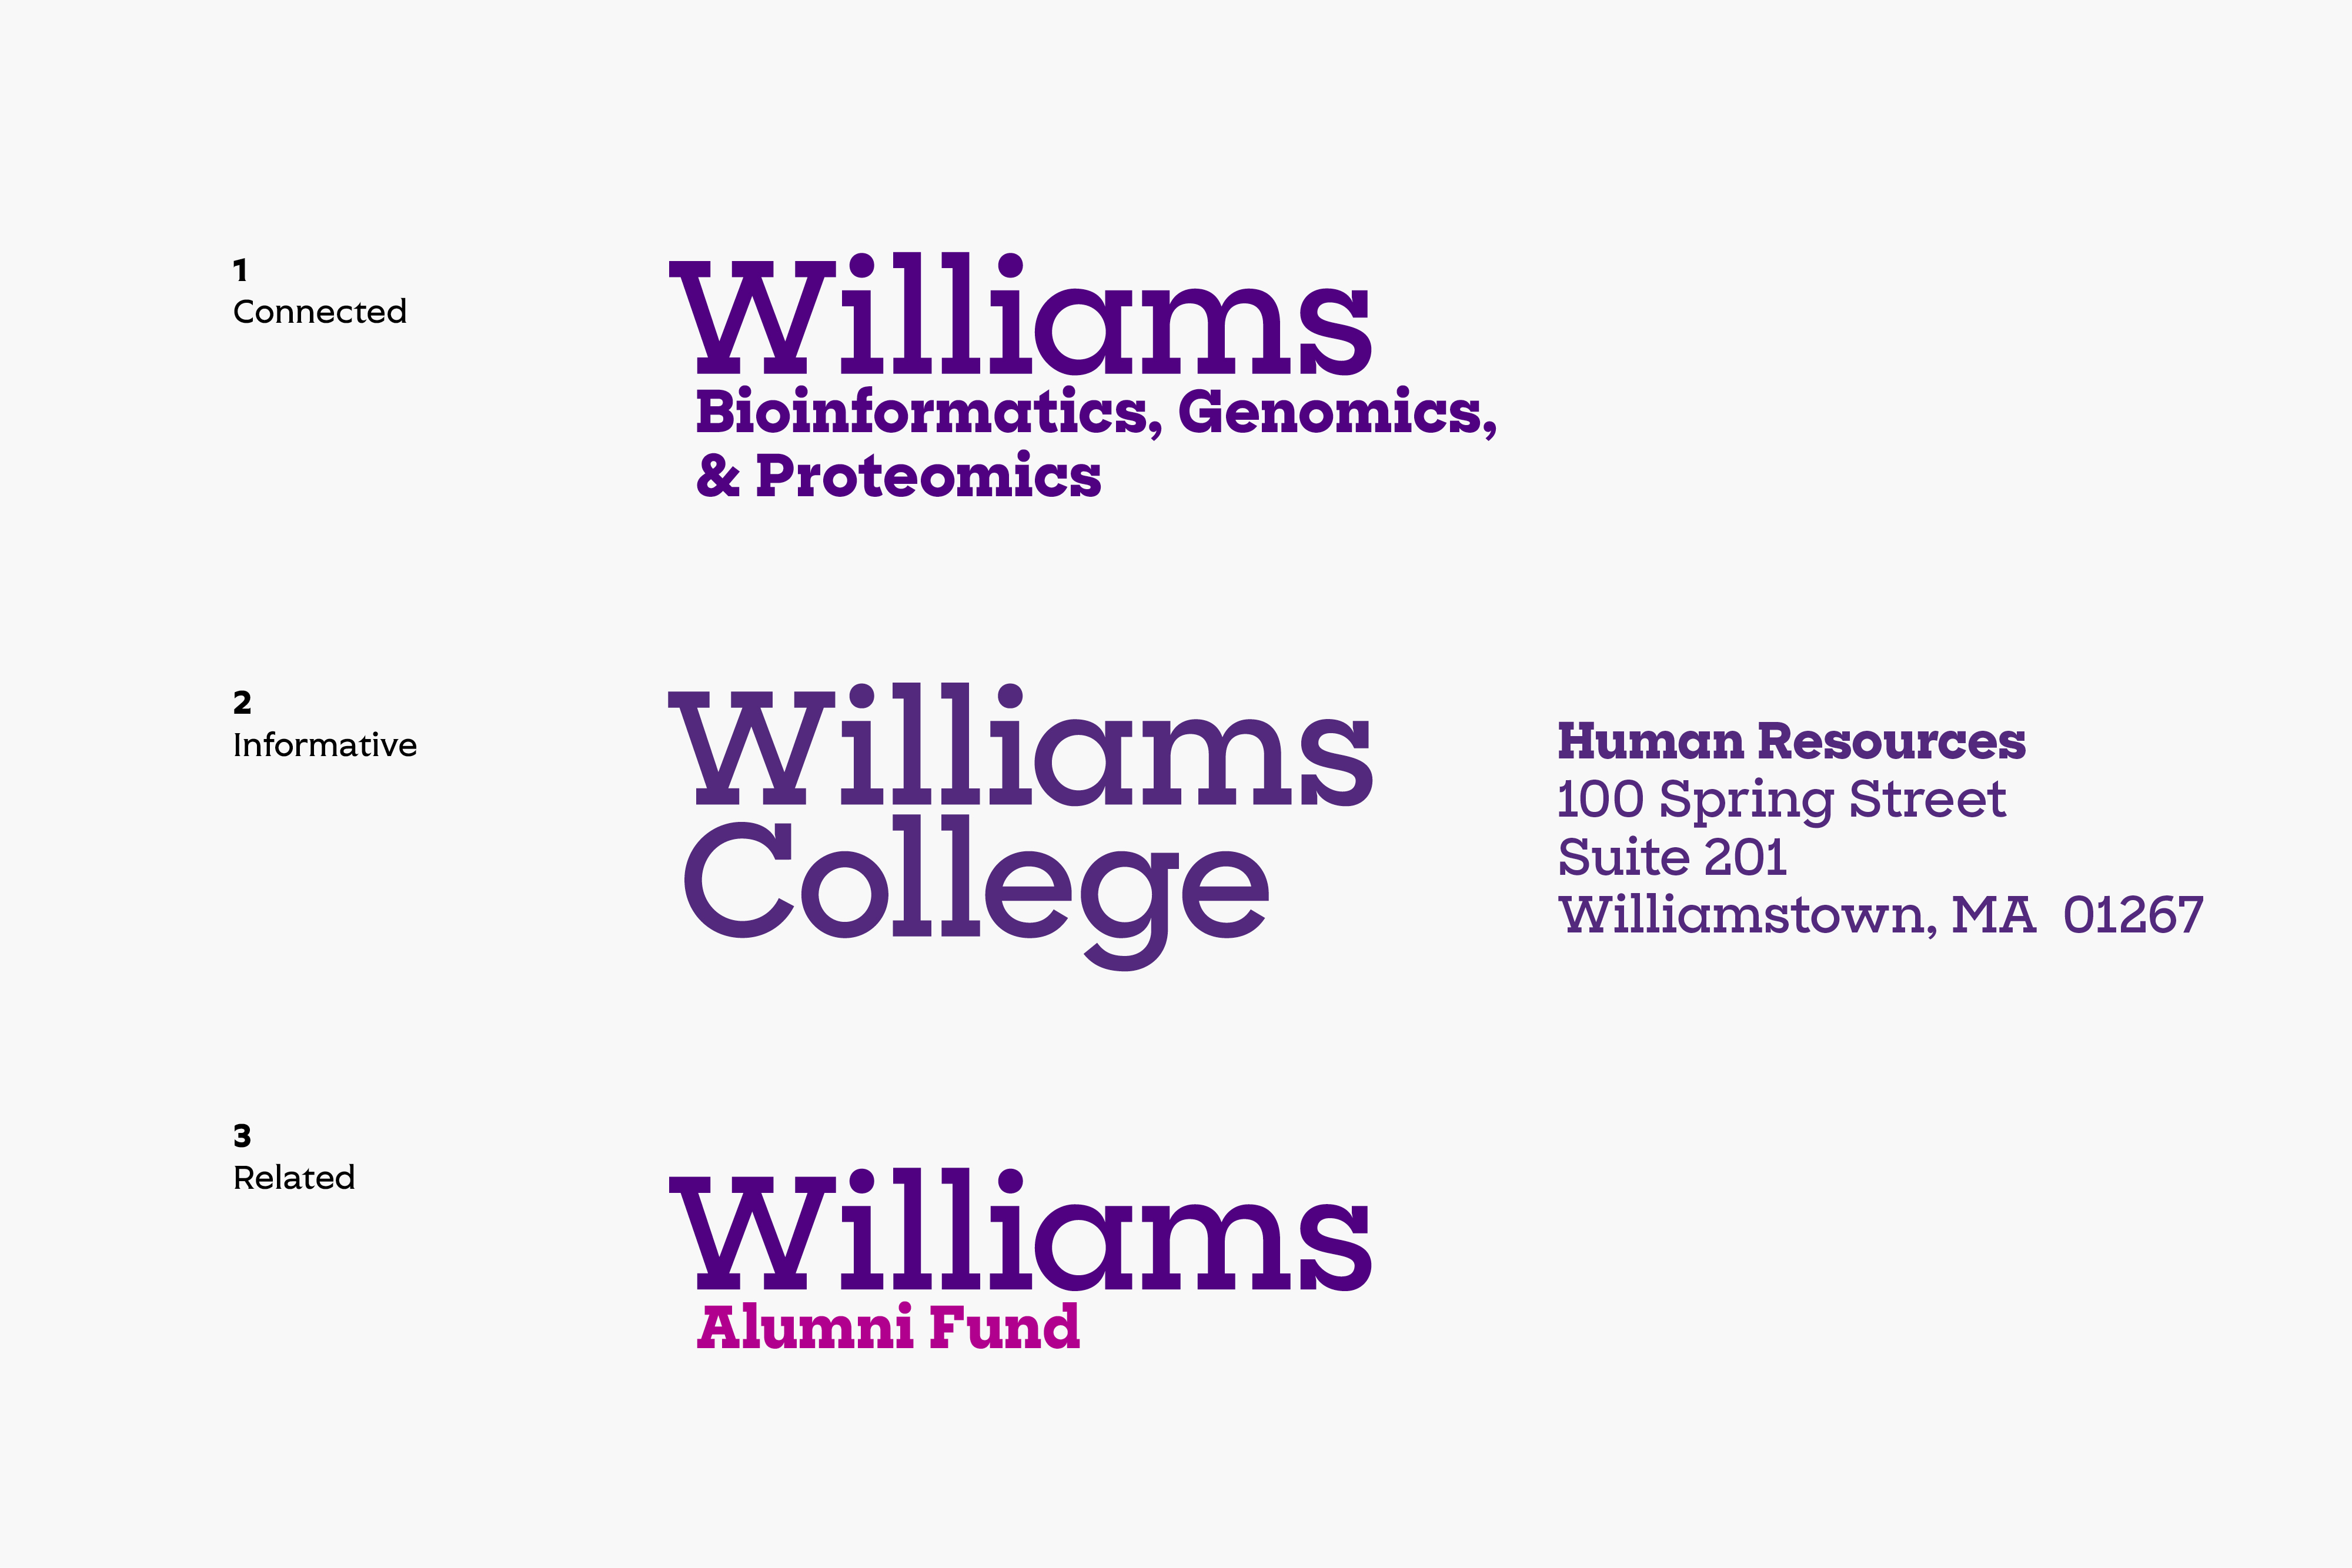 williams_guidelines_rectangle_1280px_arch20